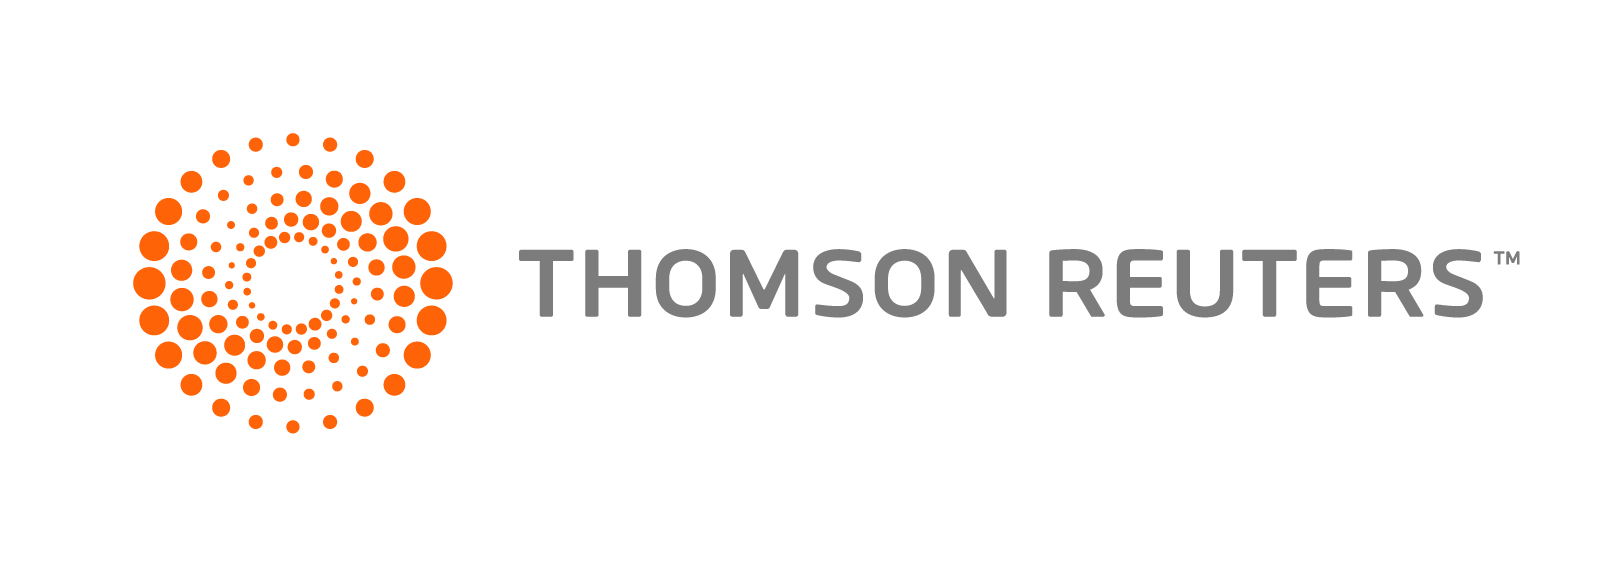 Thomson Reuters Logo Big.jpg